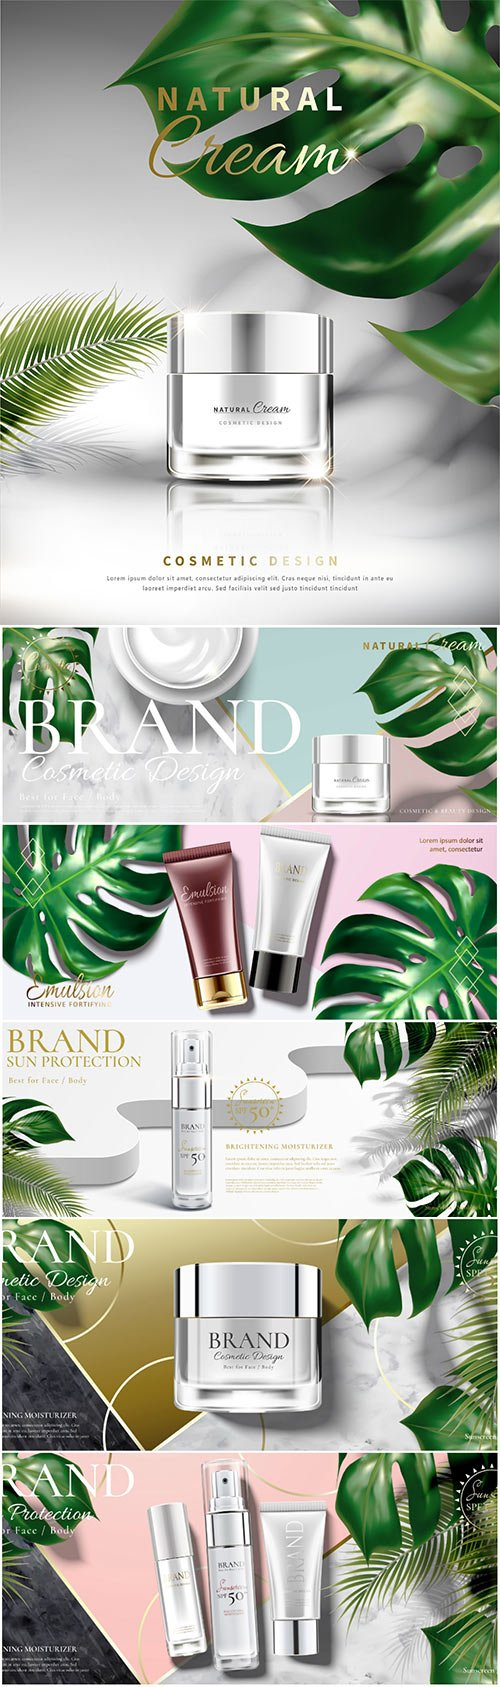 Cosmetic cream jar ads with tropical leaves in 3d illustration